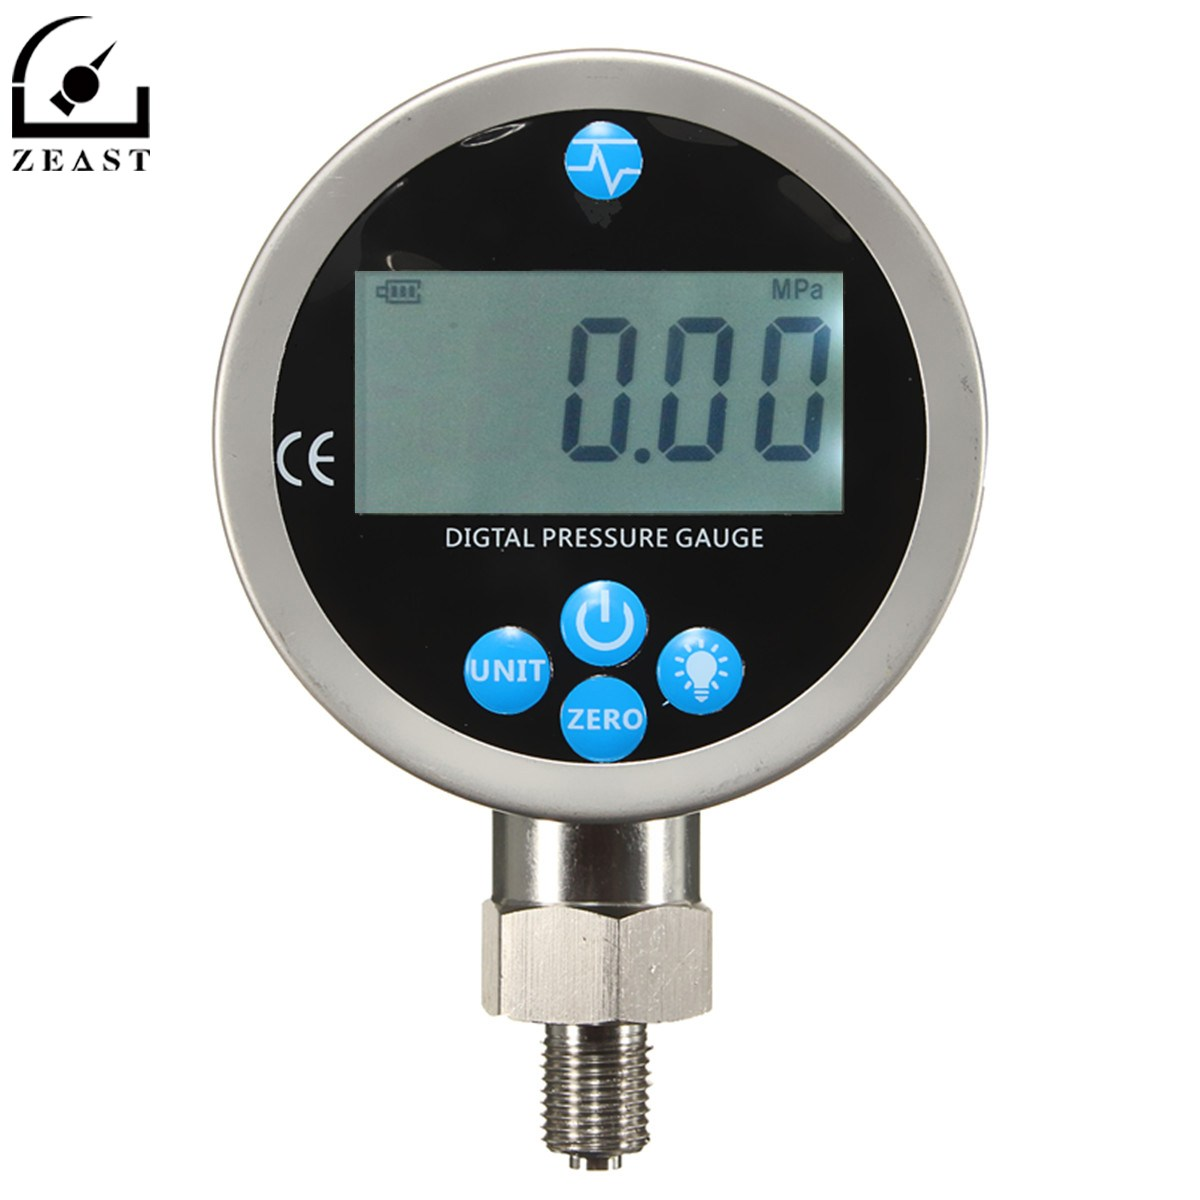 Digital Hydraulic Pressure Gauge 400BAR/40Mpa/10000PSI with BSP1/4 Connector Backlight Pressure Tester Meter homeleader 7 in 1 multi use pressure cooker stainless instant pressure led pot digital electric multicooker slow rice soup fogao